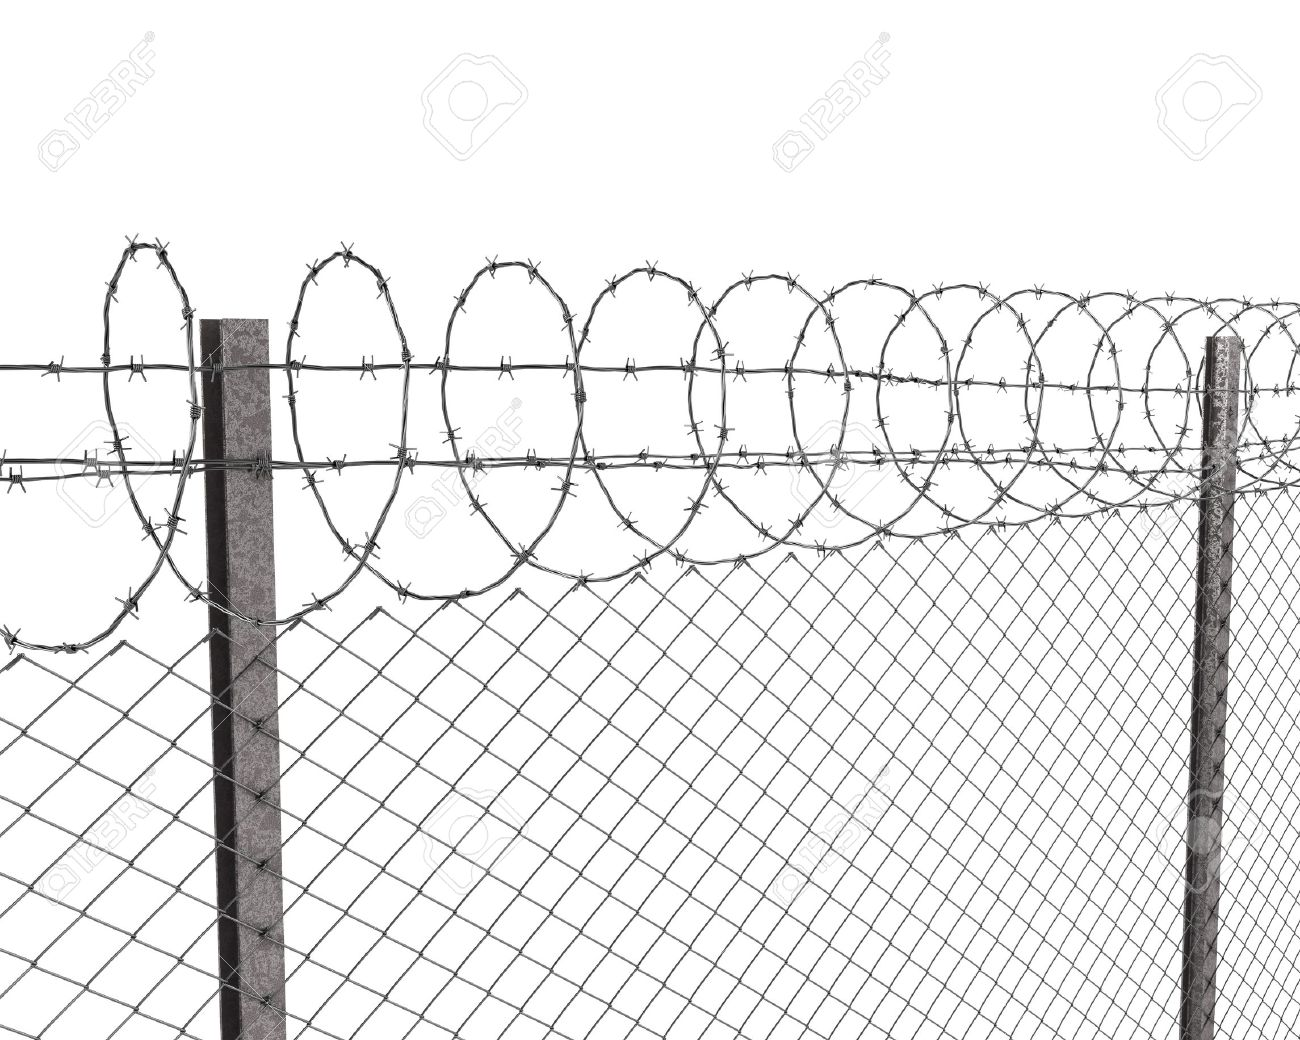 1300x1040 228KB Fence clipart With